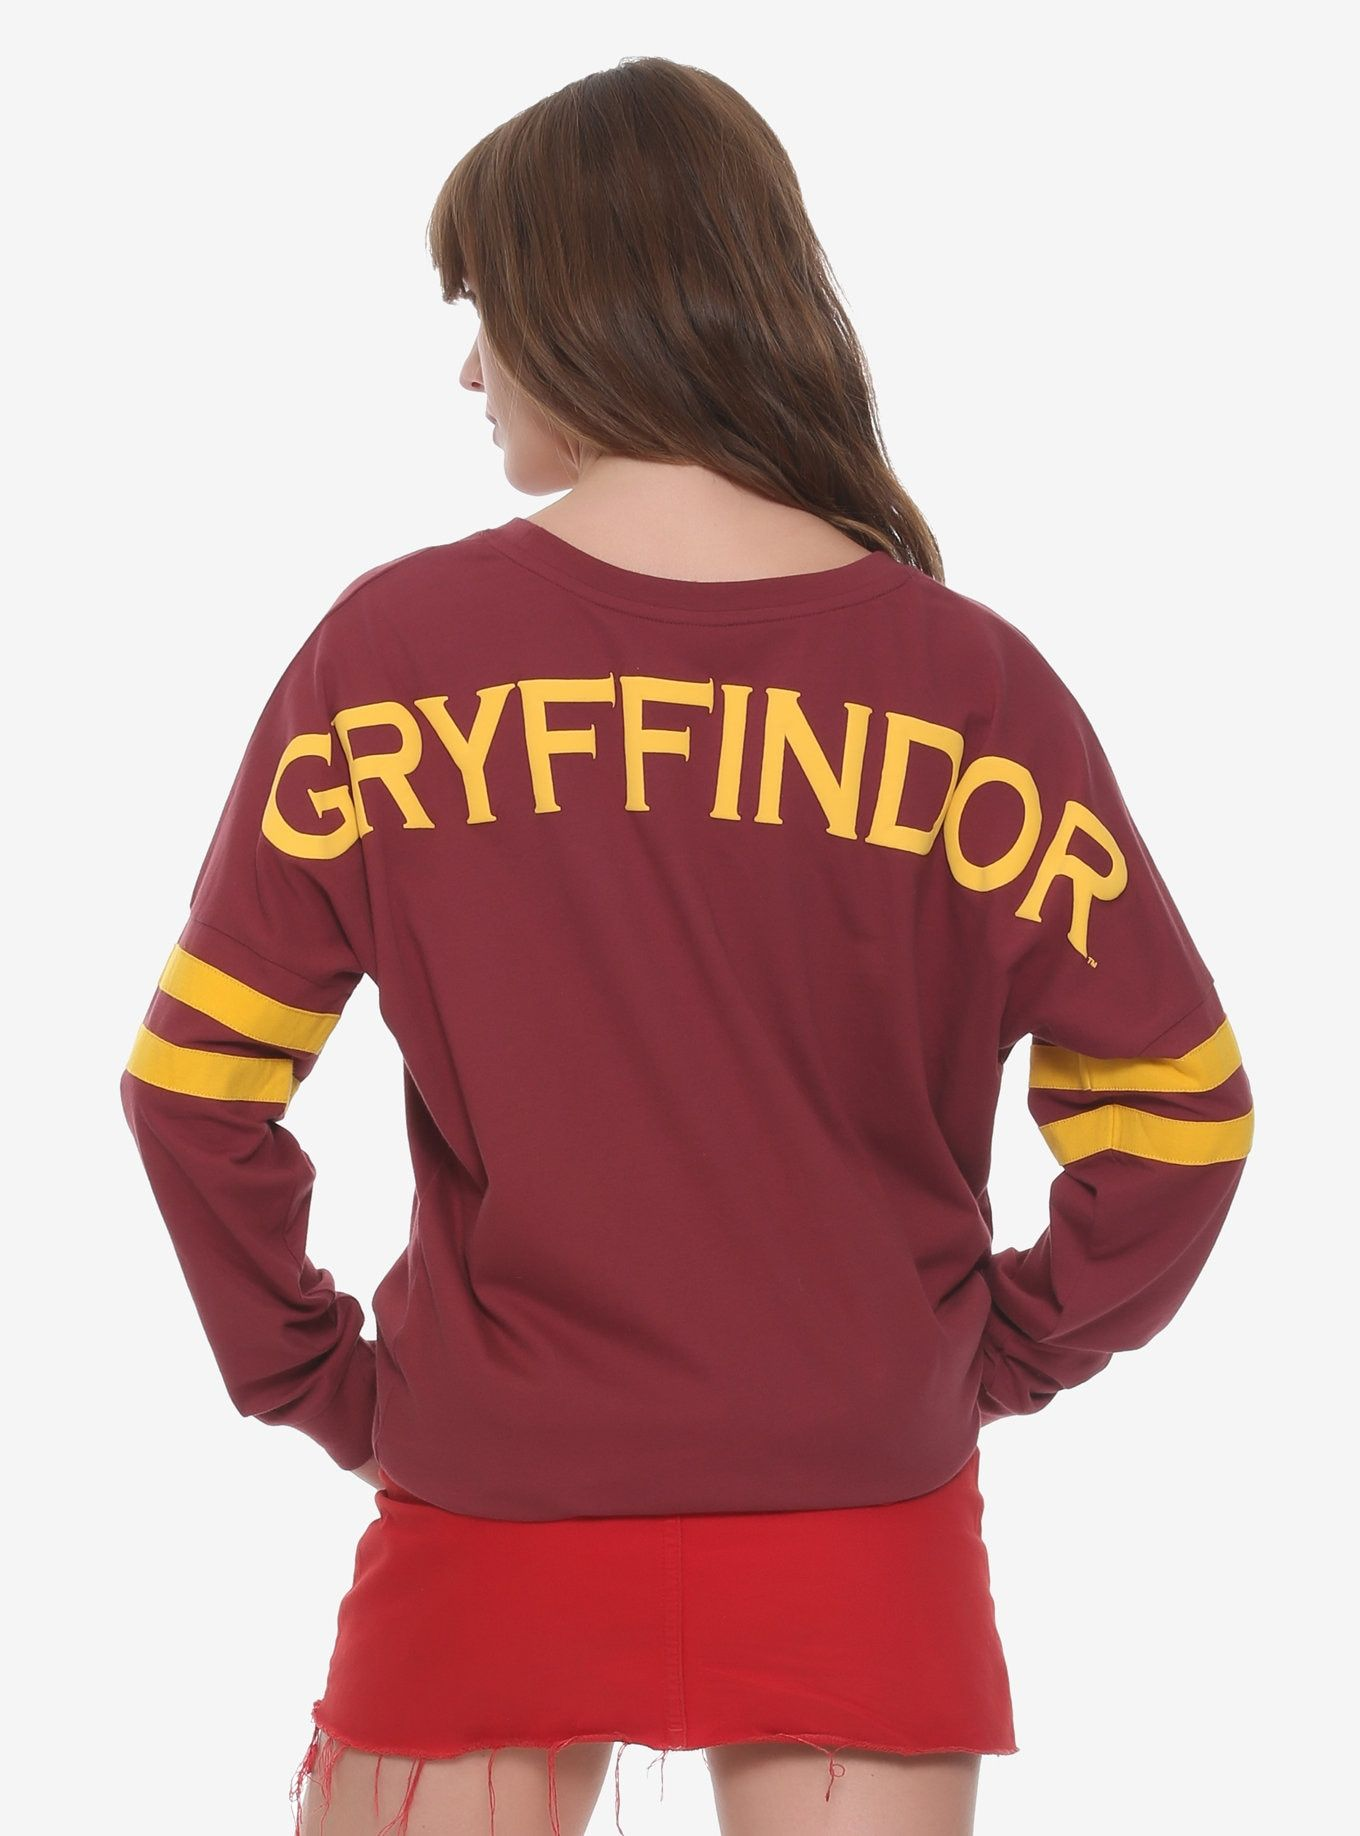 Harry Potter Gryffindor Hype Jersey BoxLunch Exclusive